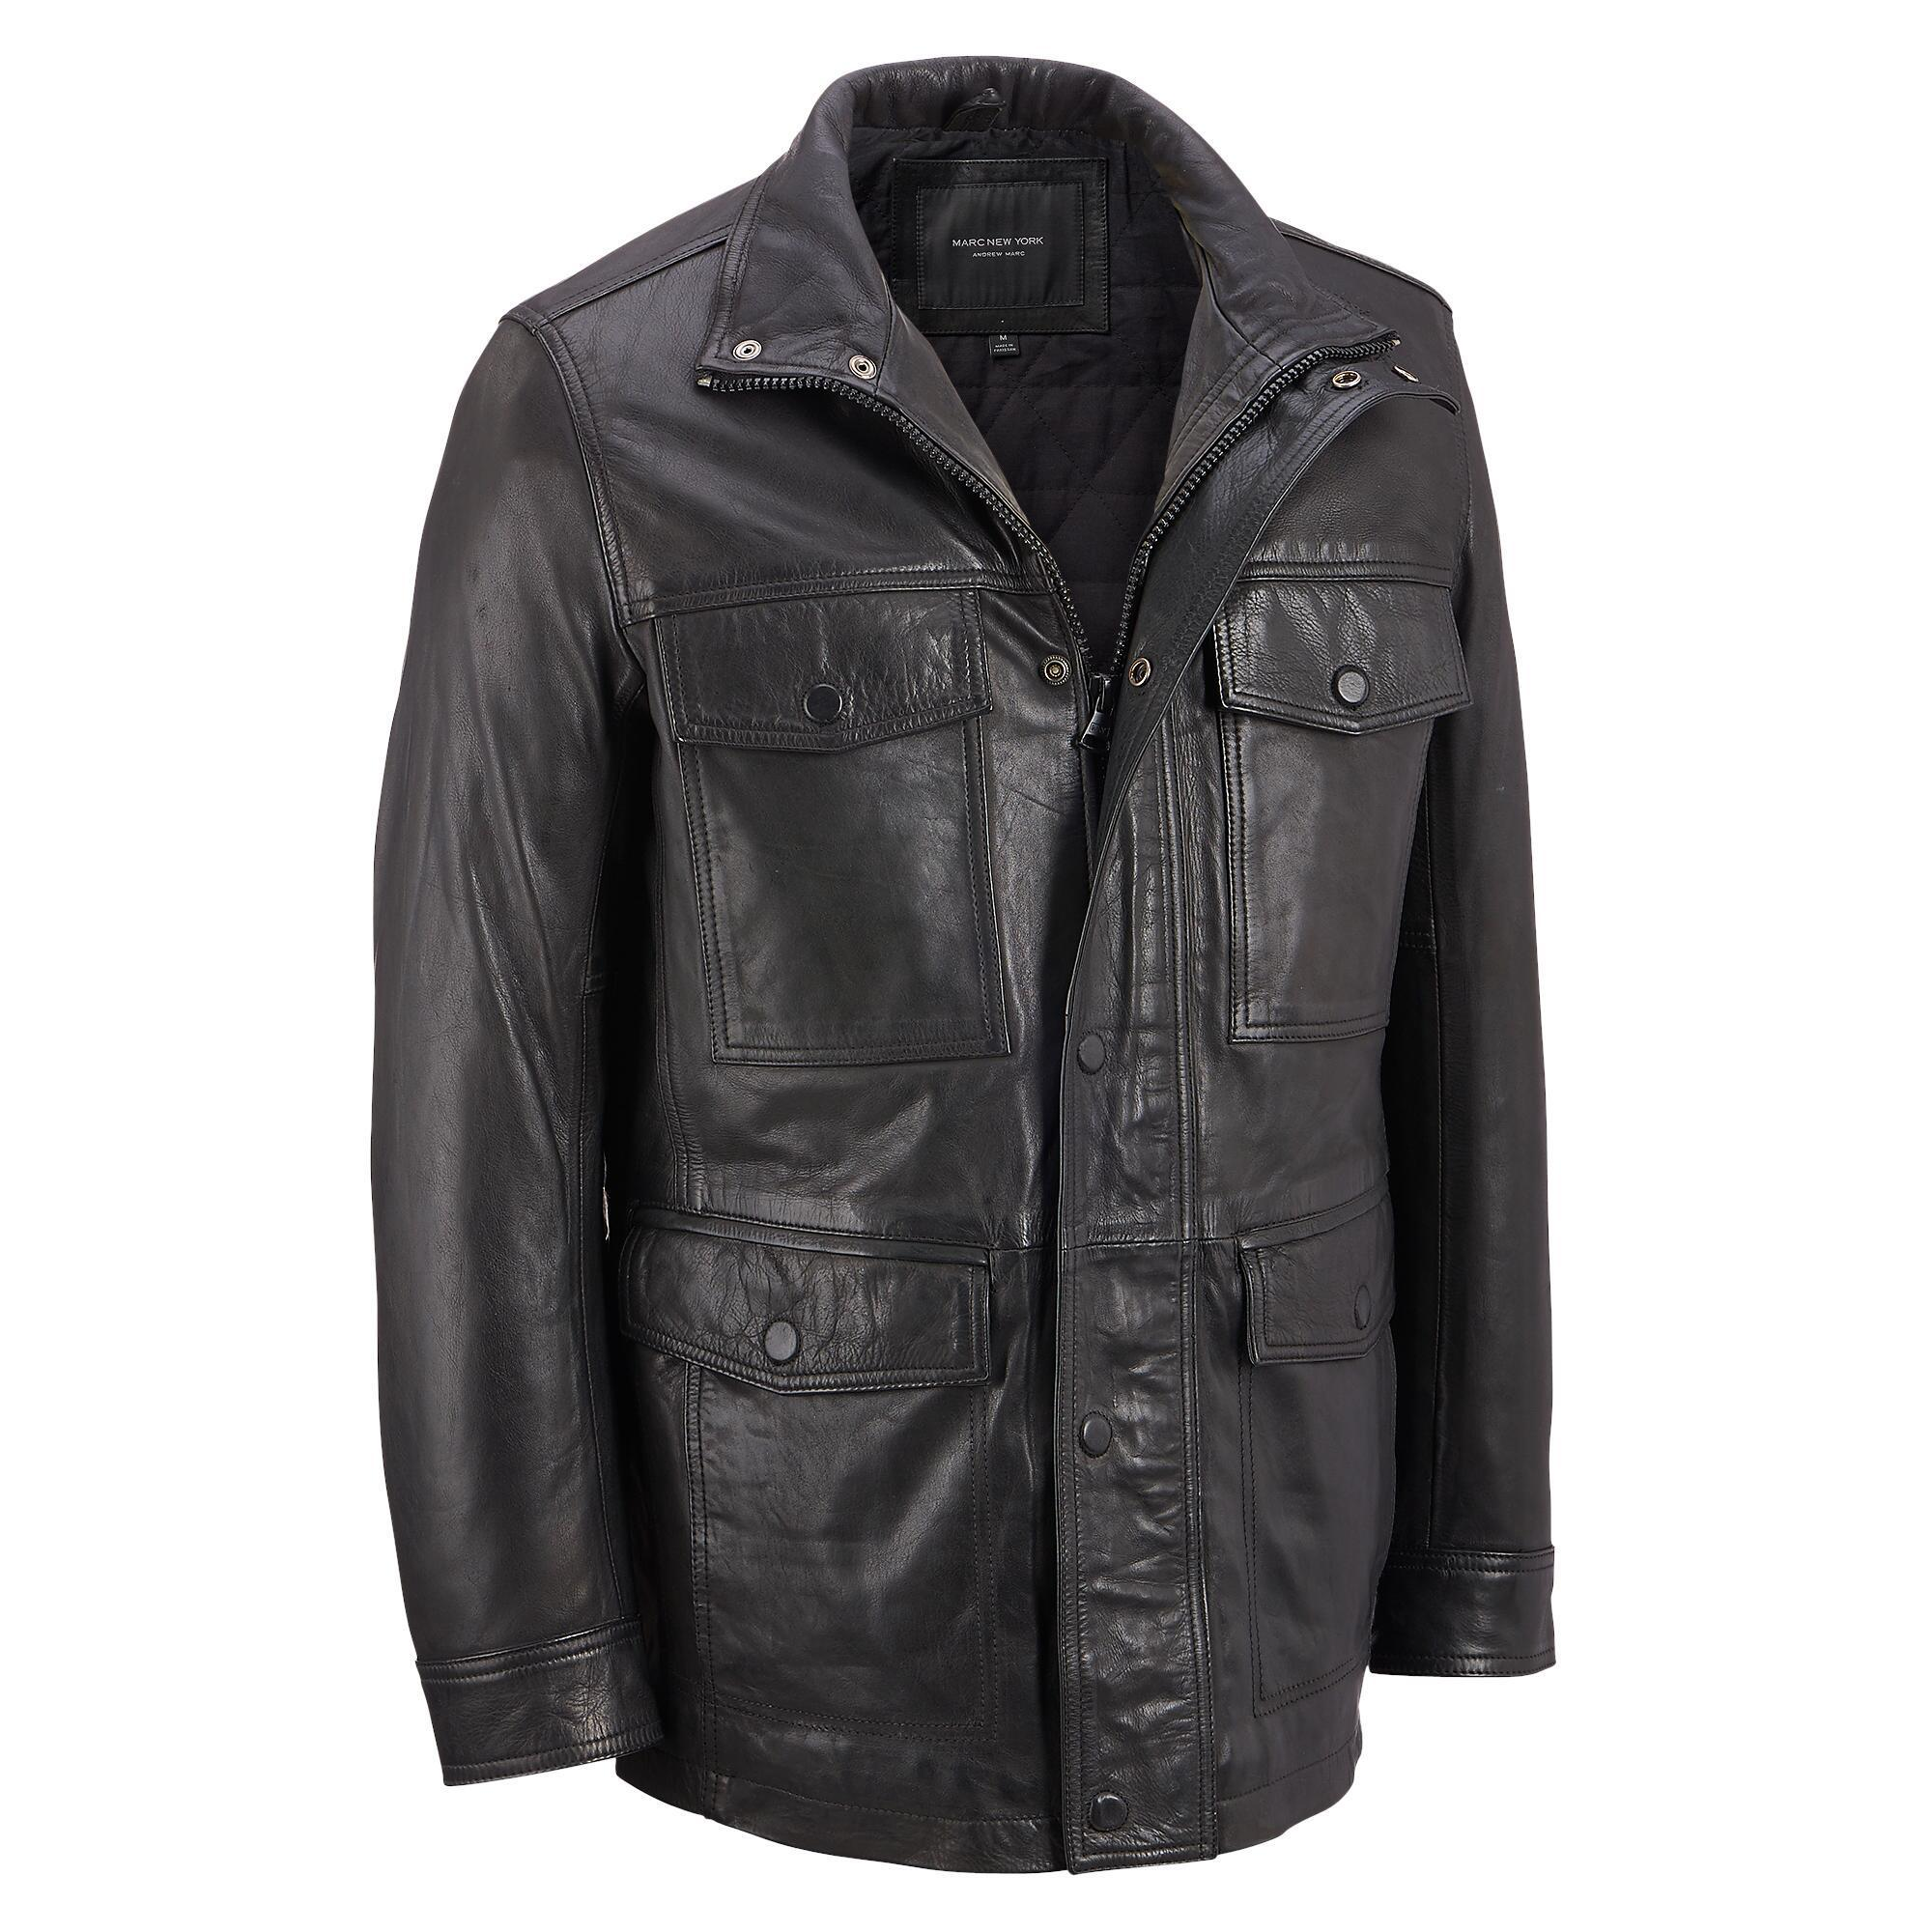 an jacket around aviator amazing gun brown bomber with leather complete look style top vintage rug to leo force coat mens a badges the rugged garment air pilot